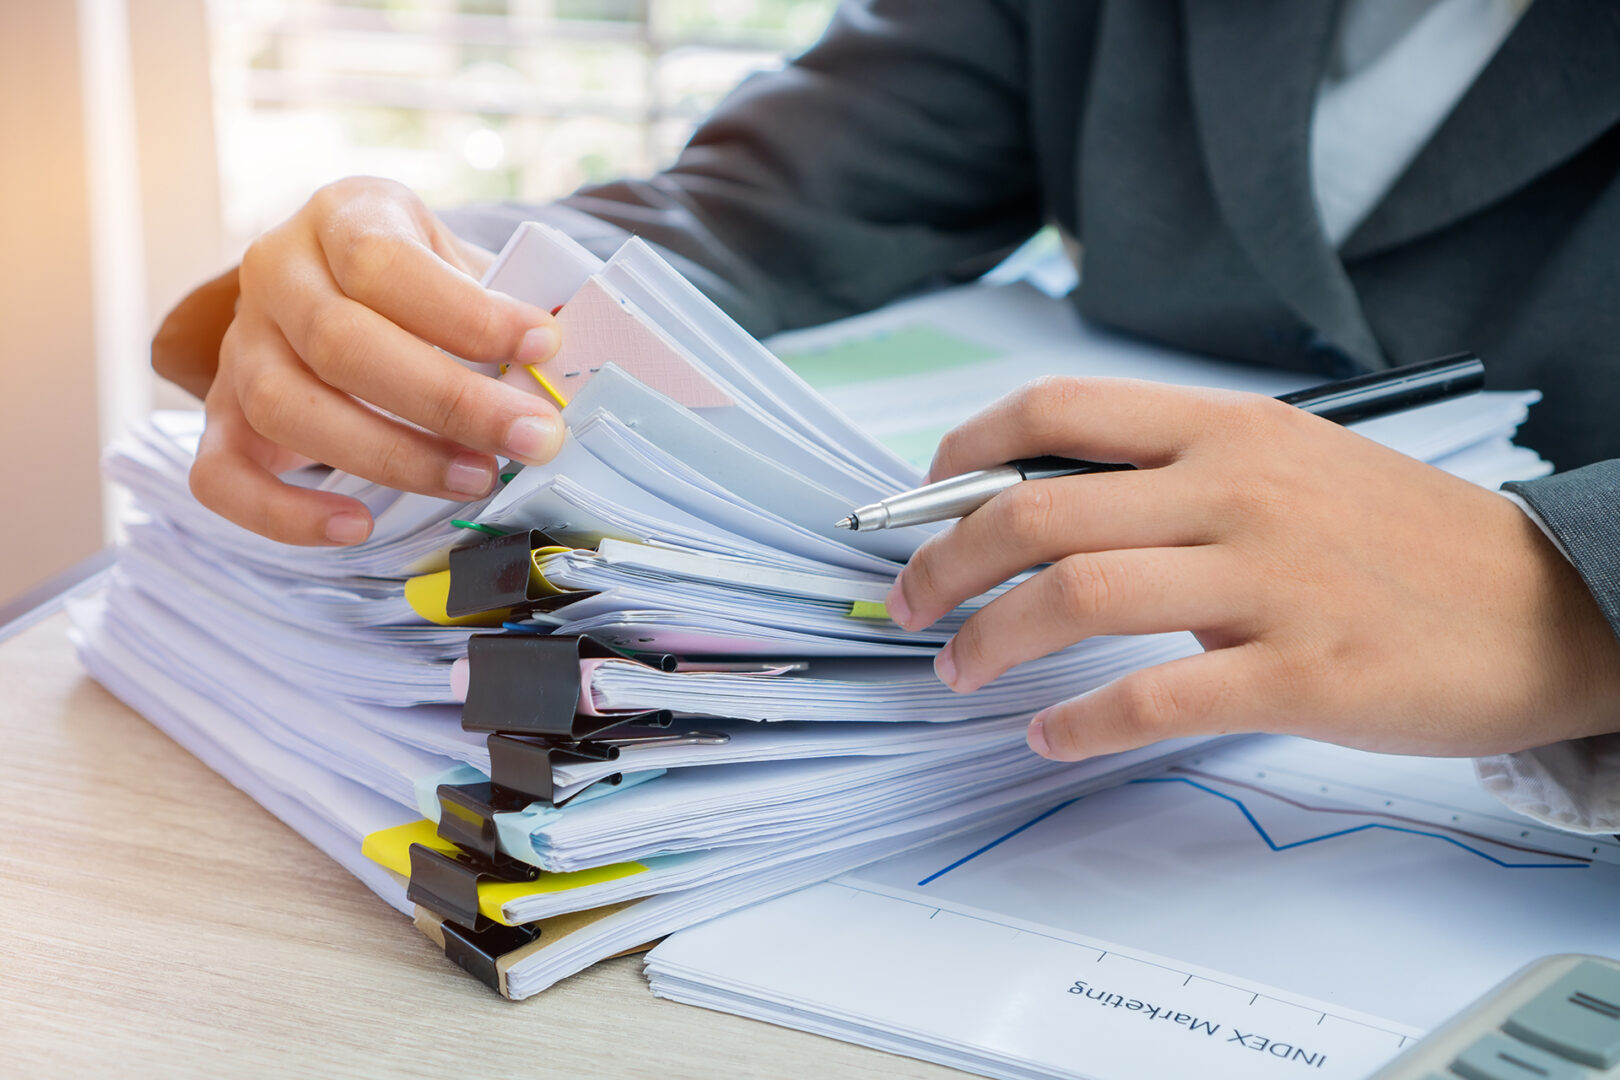 Hands young female business managers checking and arranging stack of unfinished documents reports papers for result graph marketing, startup project for plan job succes in Busy office with flare light